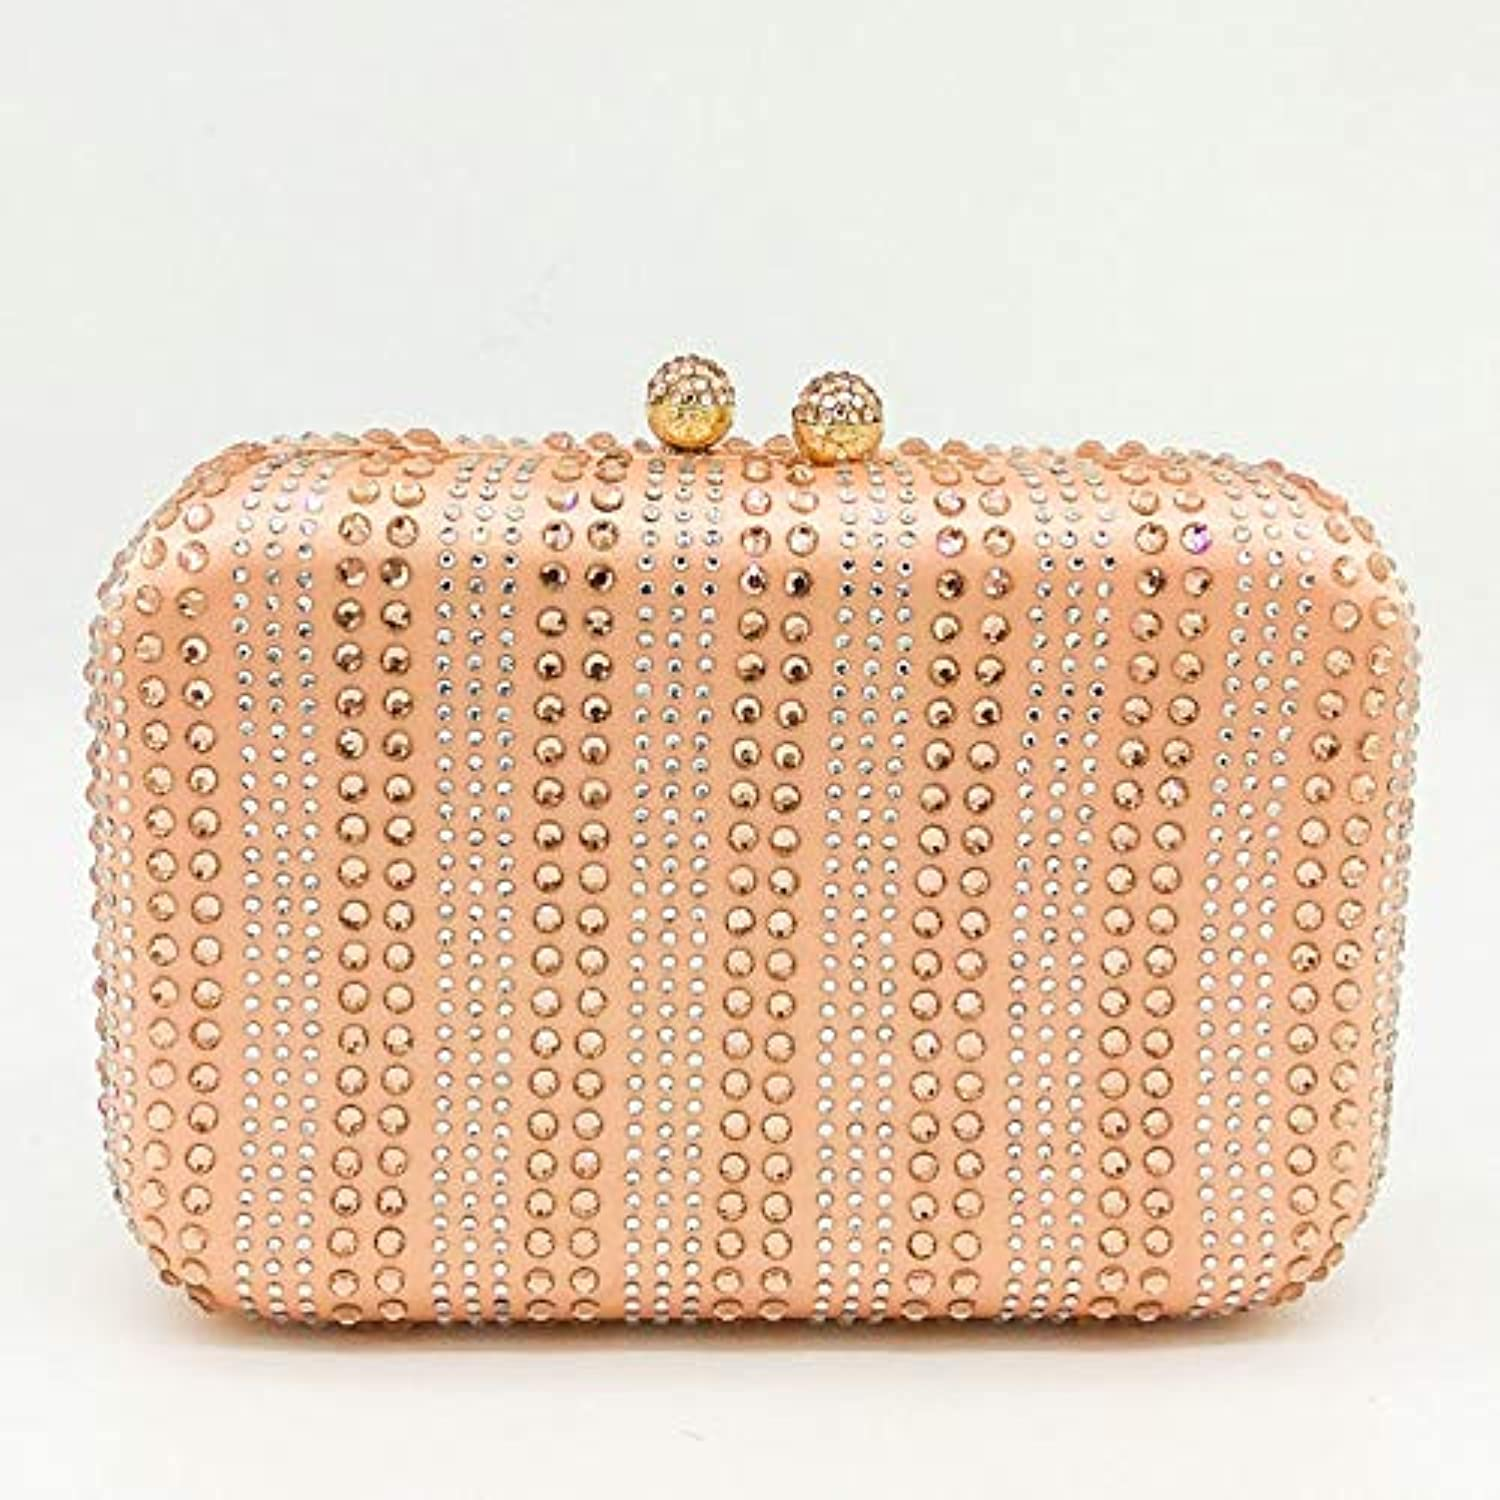 ASHIJIN Boutique Champagne Clear and Crystal Stripes Womens Clutch Evening Wedding Bag Party Cocktail Rhinestone Metal Bag